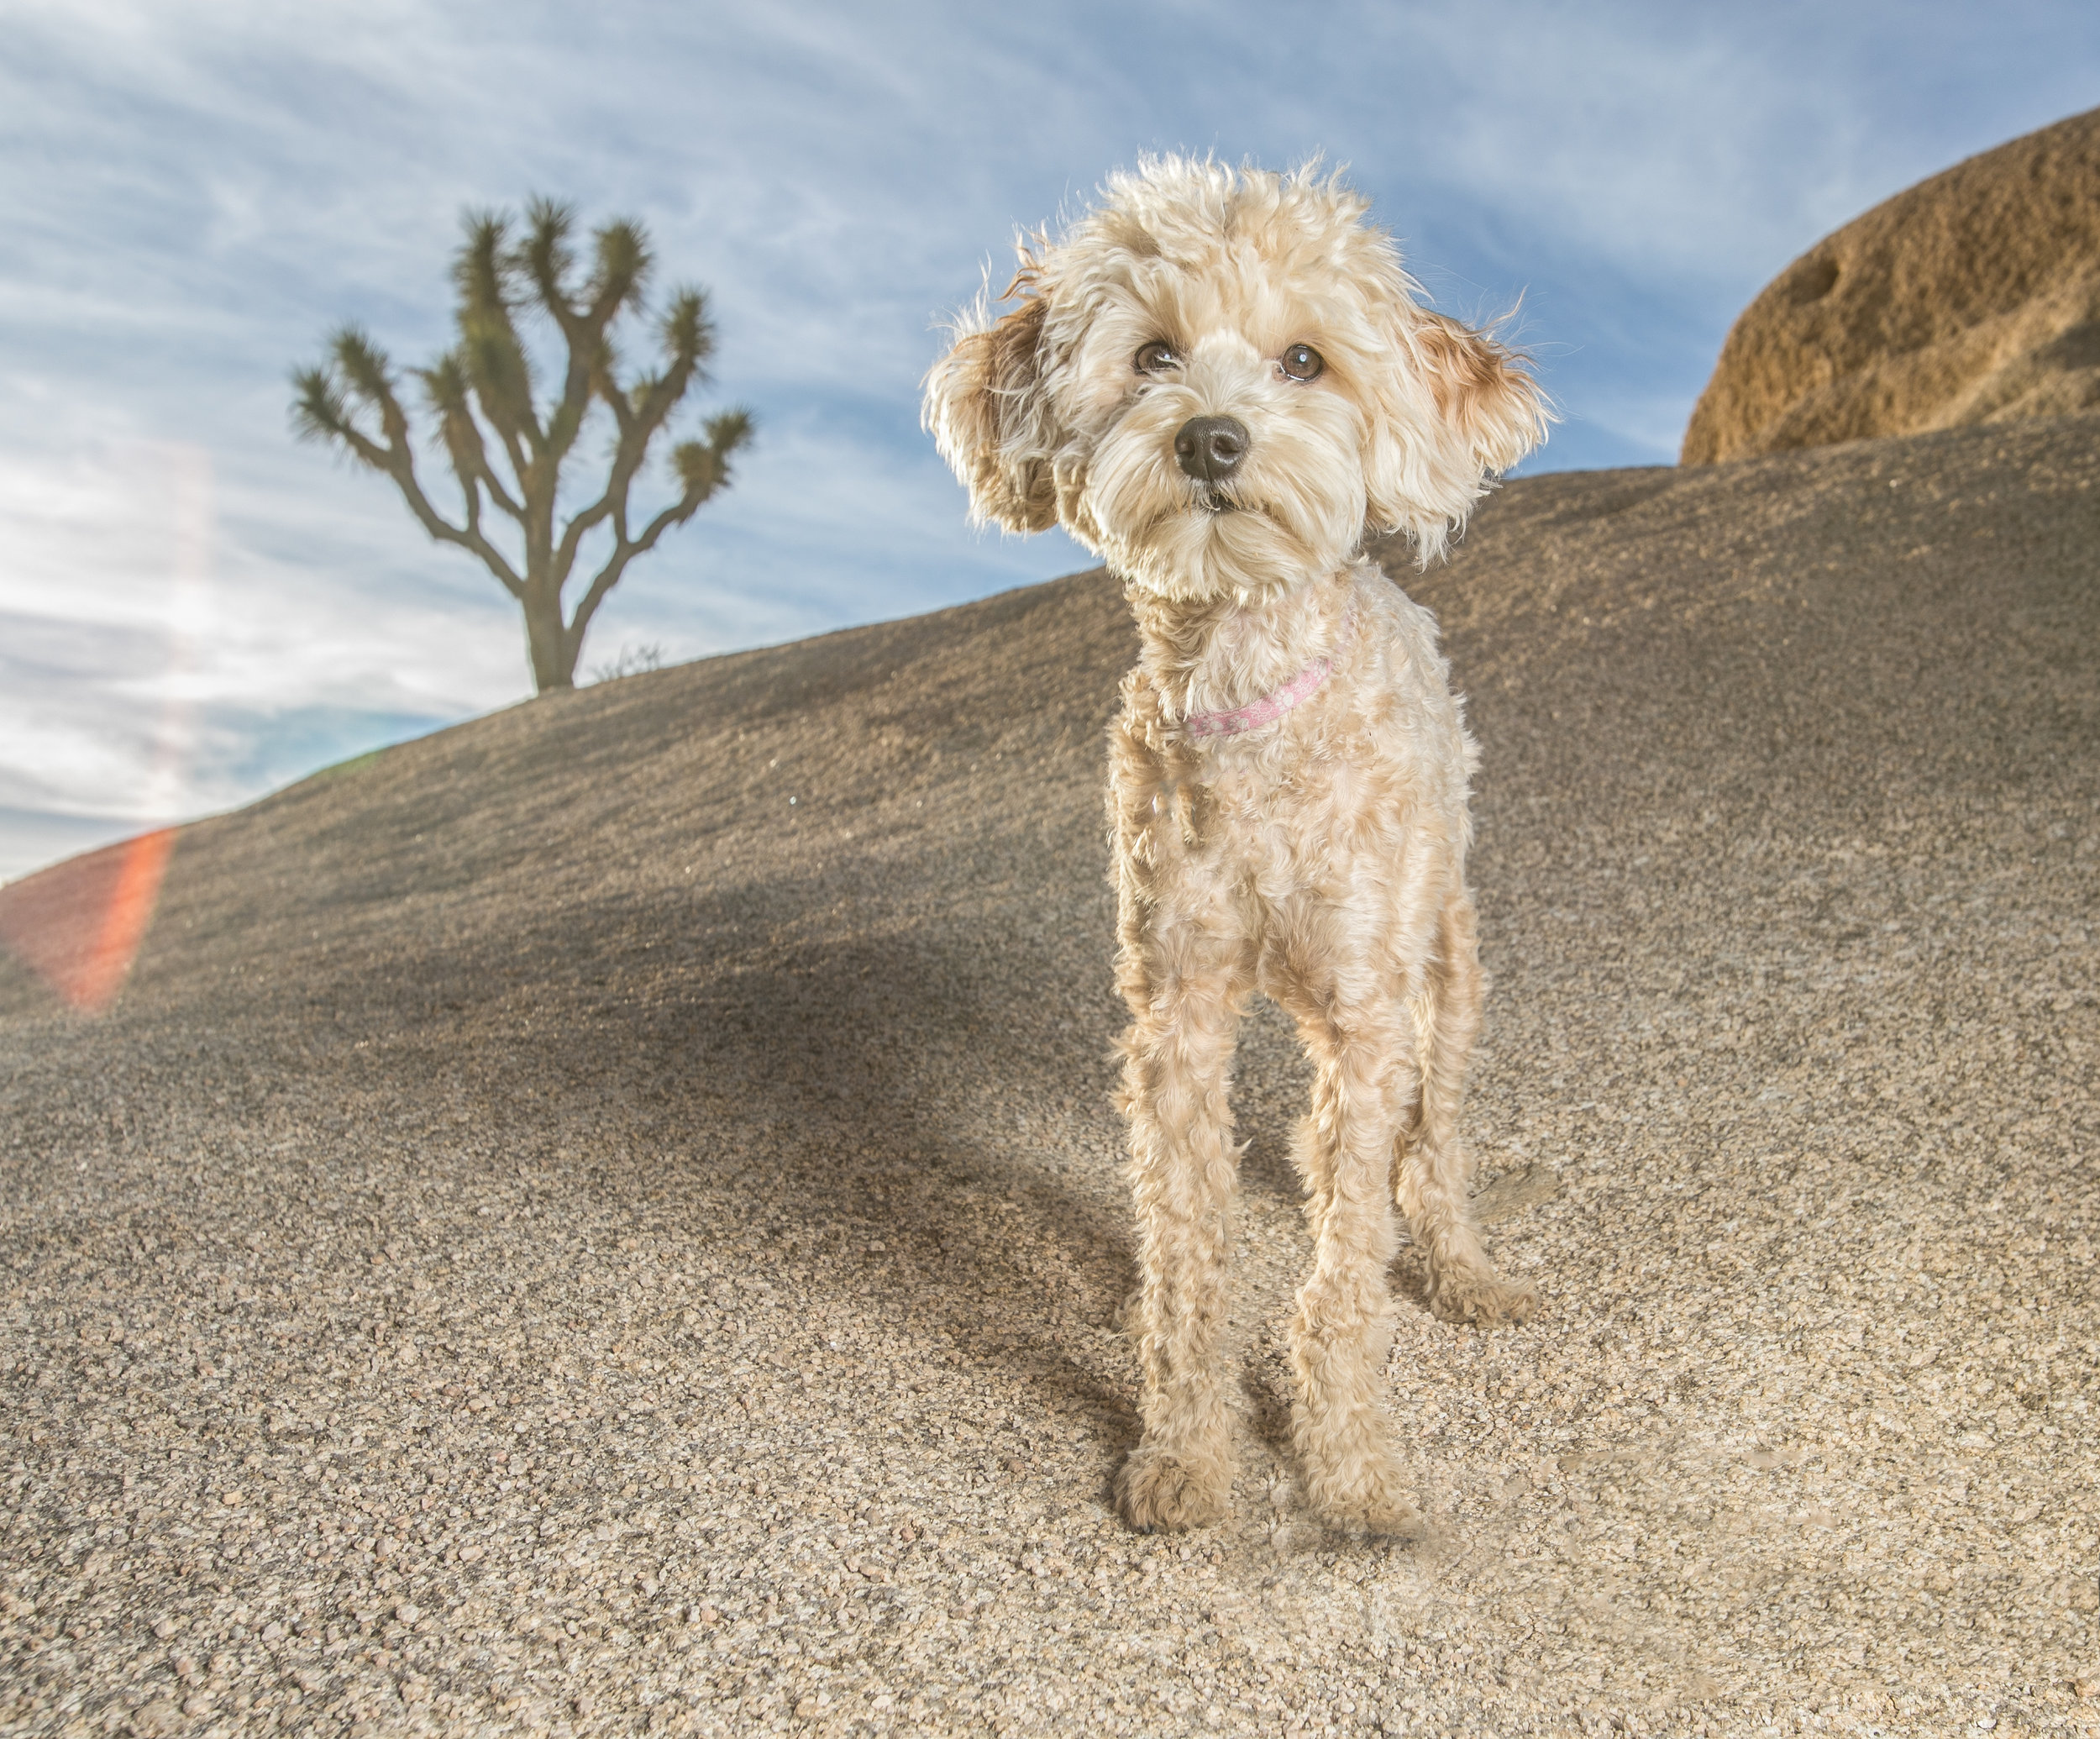 This is my dog, Hope. She and her big brother, Sam are the loves of my life. We all took a road trip yesterday out to the desert in Joshua Tree, Ca. and made some new memories. This photo is already printed and ready to go into a beautiful frame.